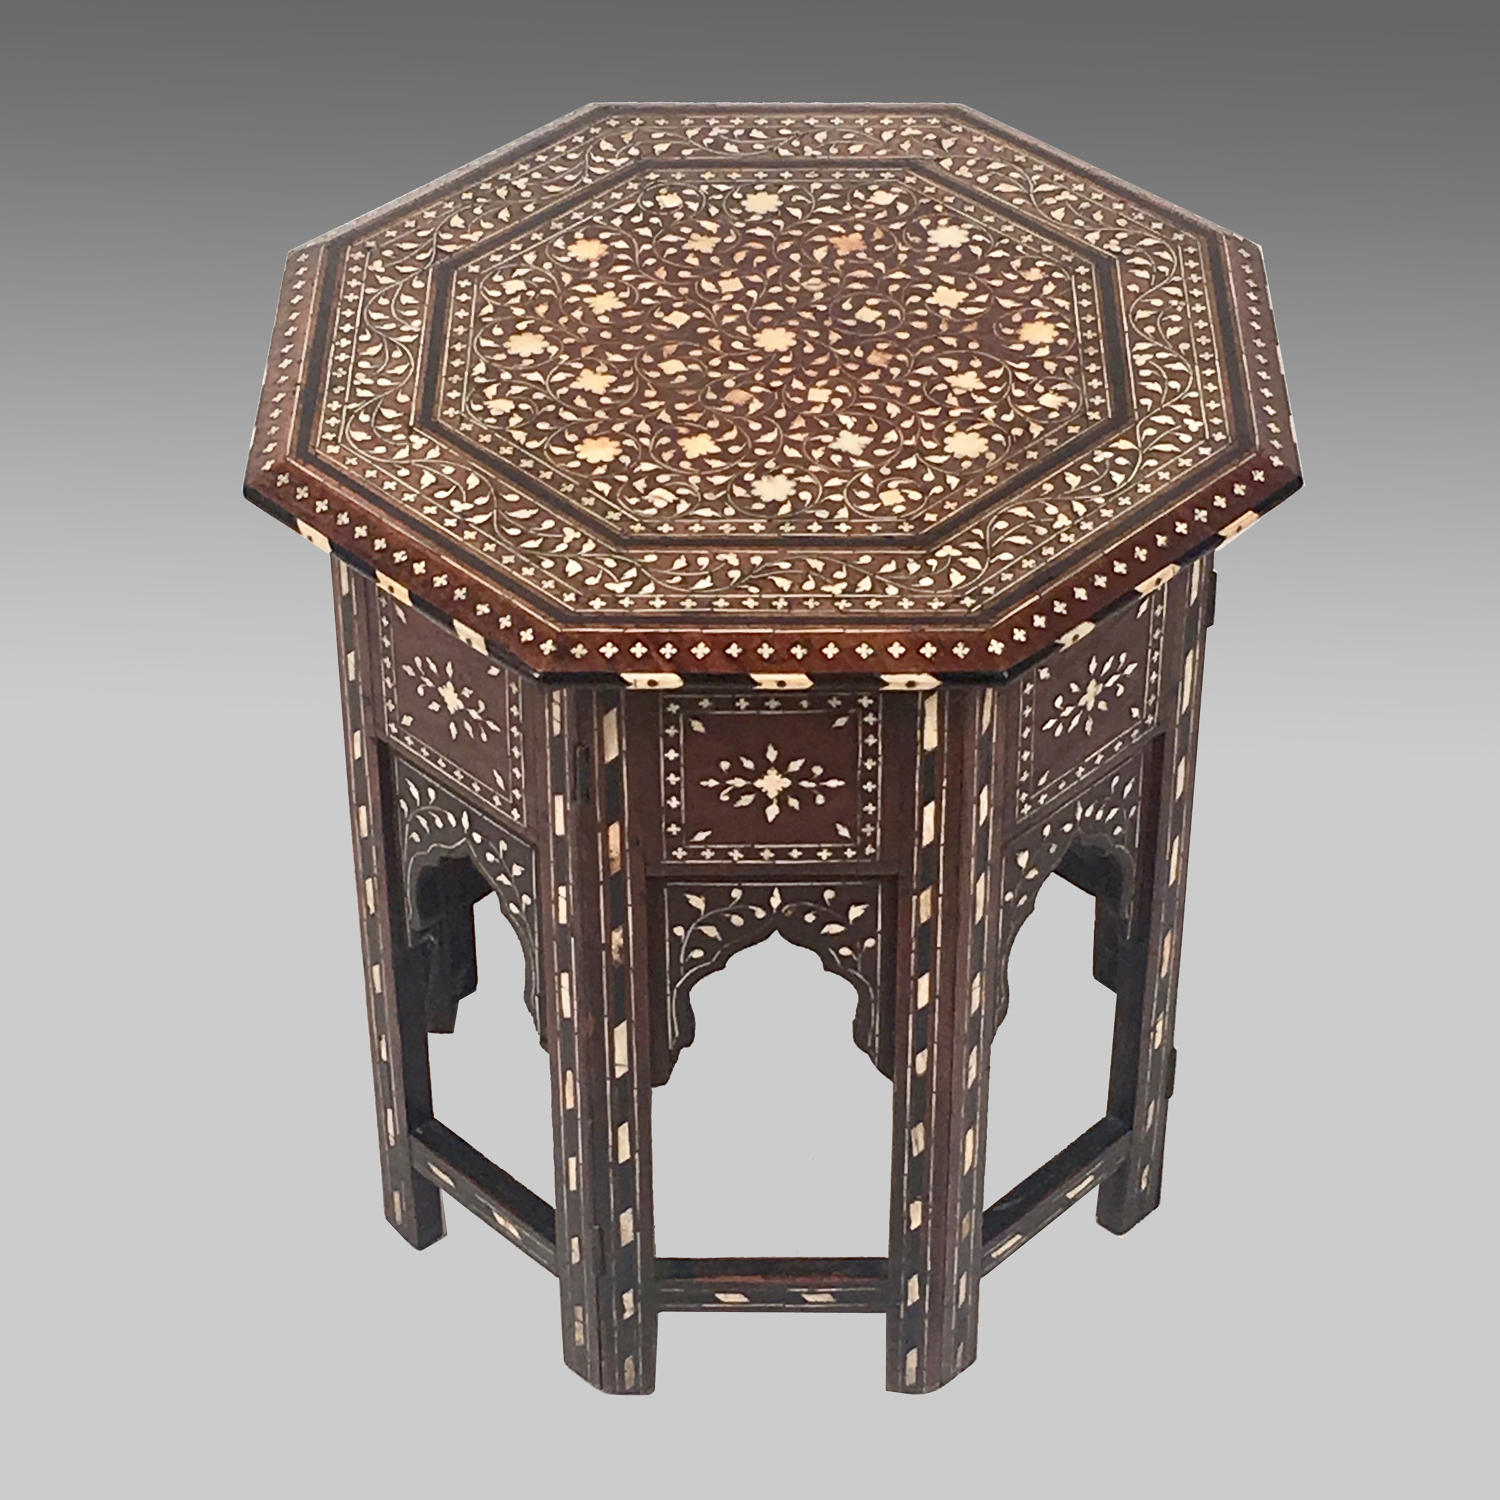 Late 19th century Anglo Indian inlaid table